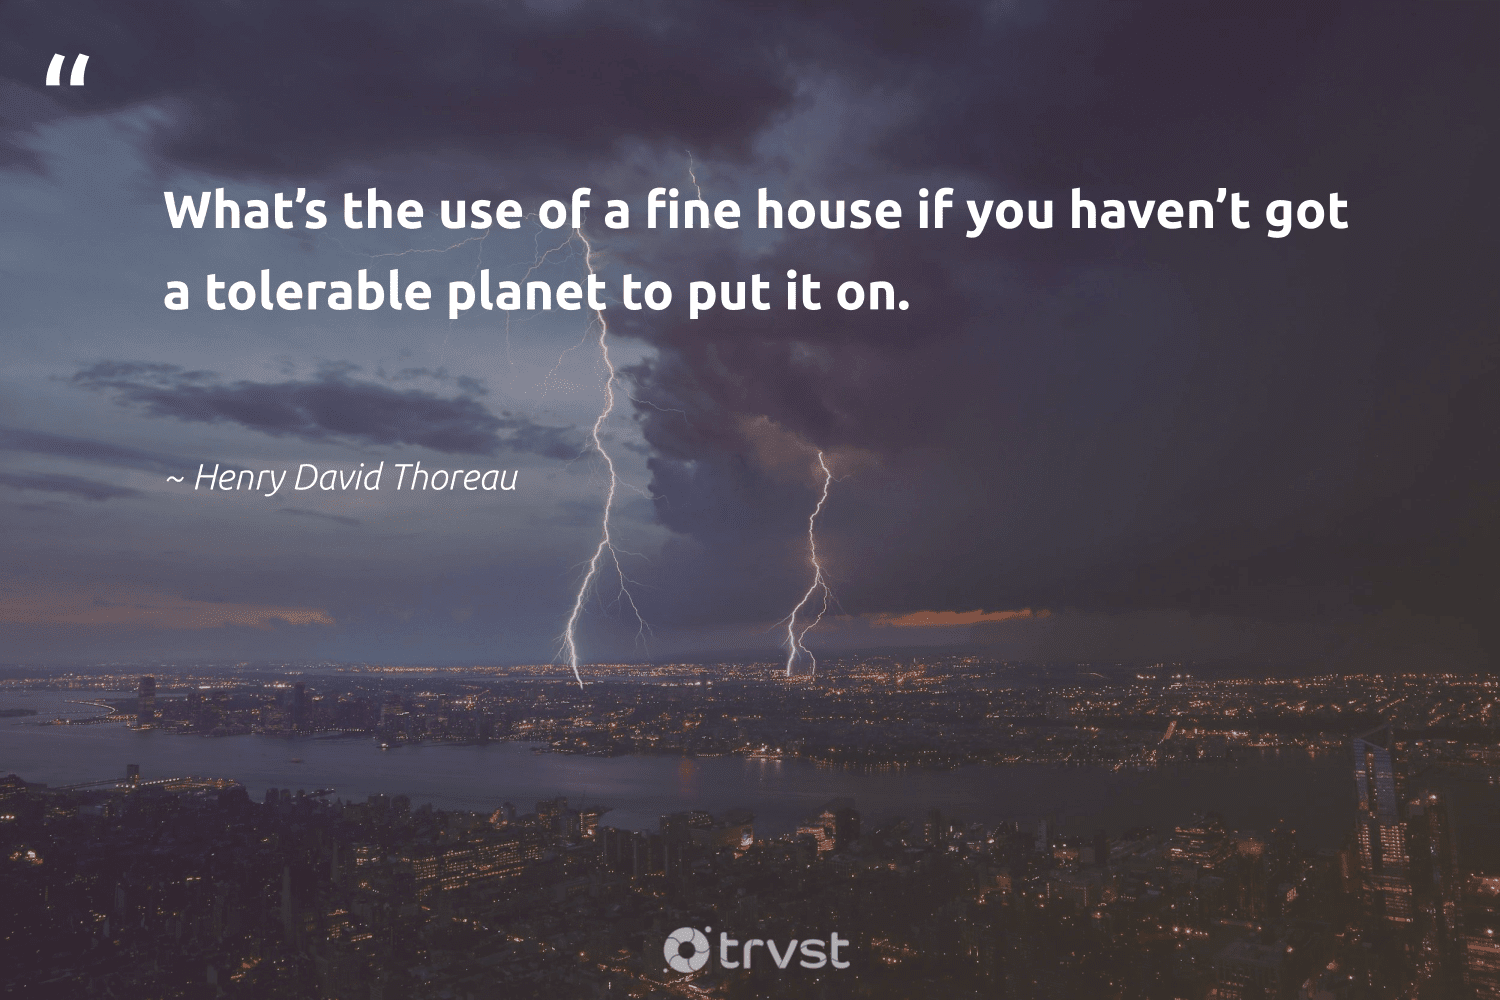 """""""What's the use of a fine house if you haven't got a tolerable planet to put it on.""""  - Henry David Thoreau #trvst #quotes #planet #mothernature #climateaction #giveback #ecoconscious #nature #sustainablefutures #wildlifeplanet #gogreen #earth"""